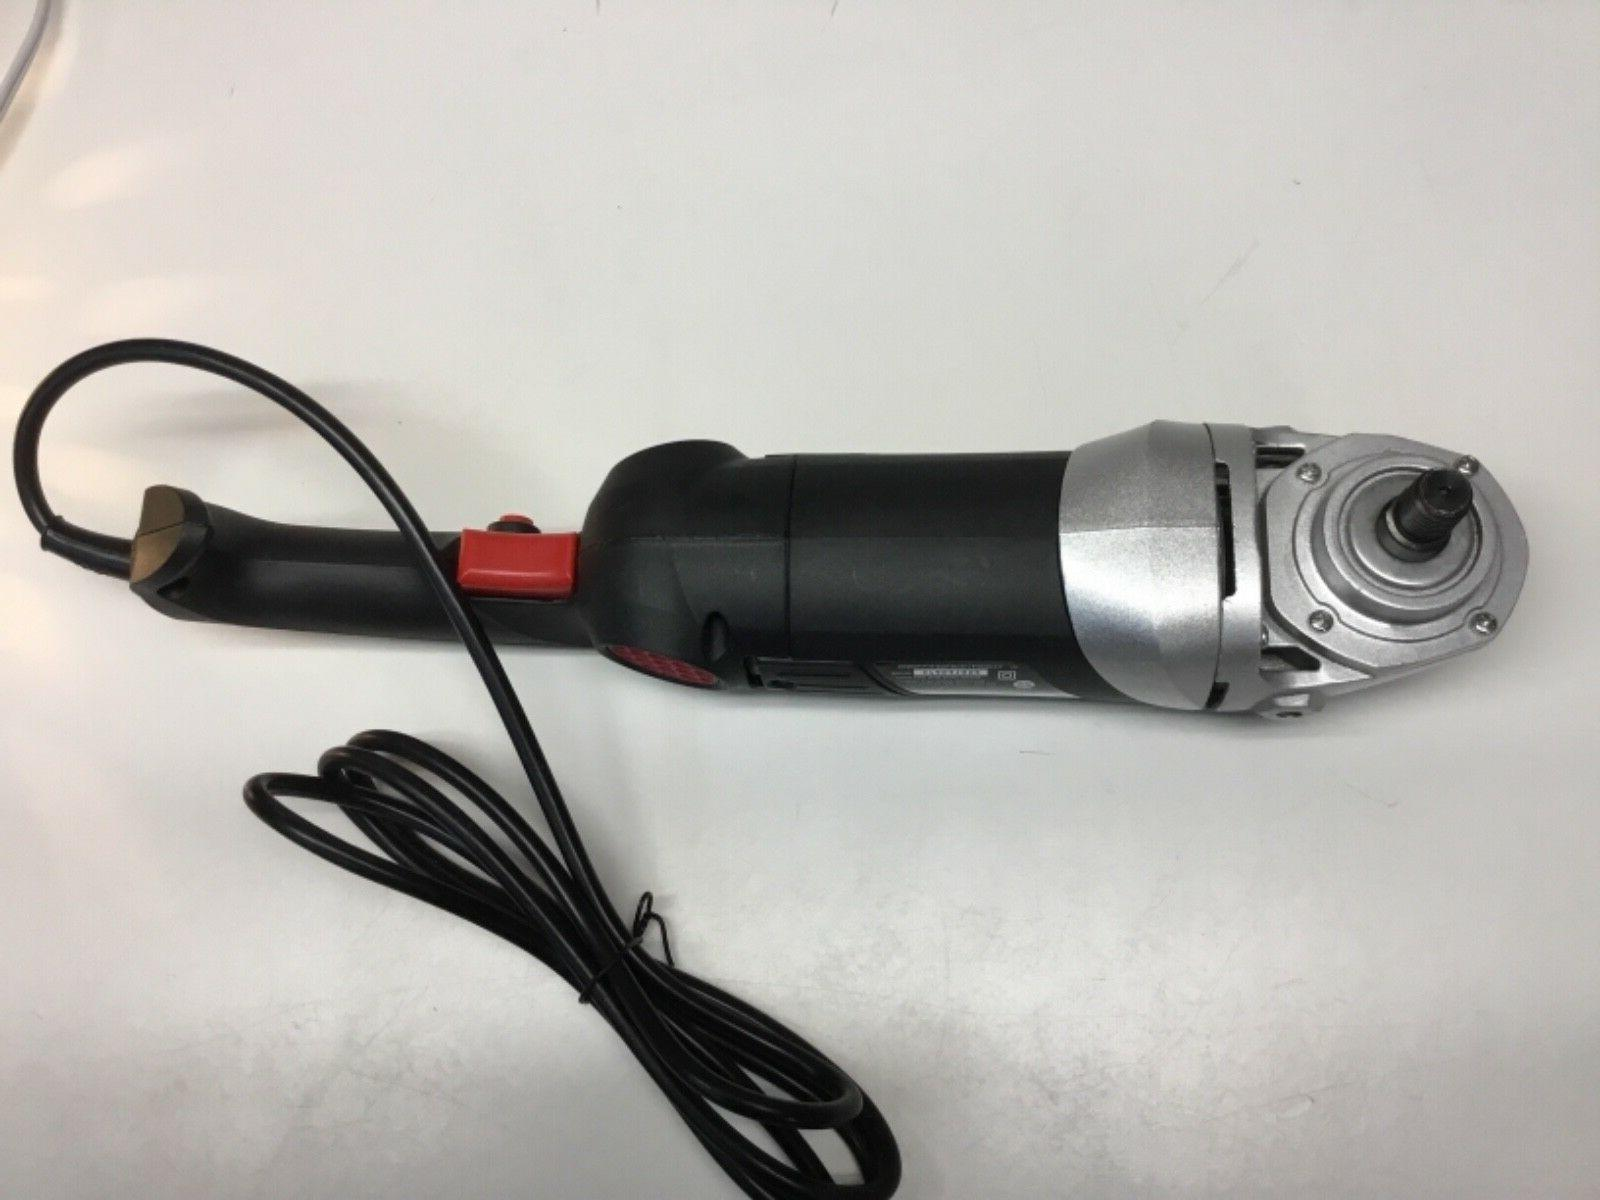 NEW inch Drill Master never Used